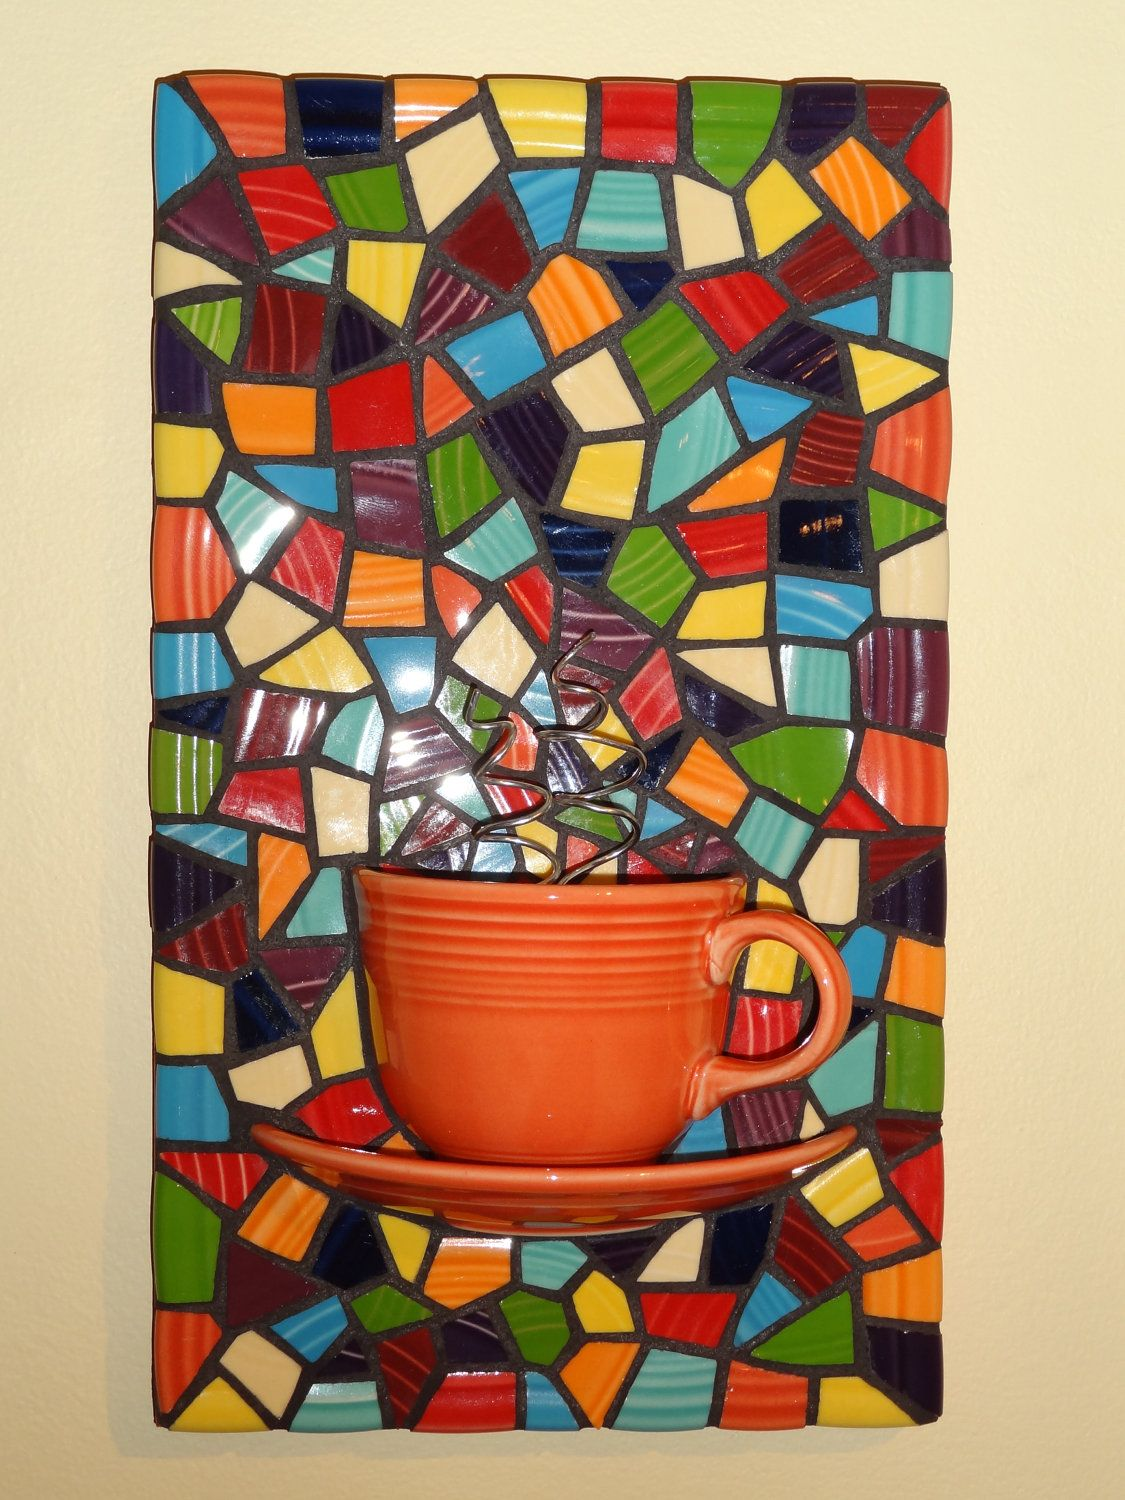 Mosaic seamist teacup and saucer with steam bright mosaic art